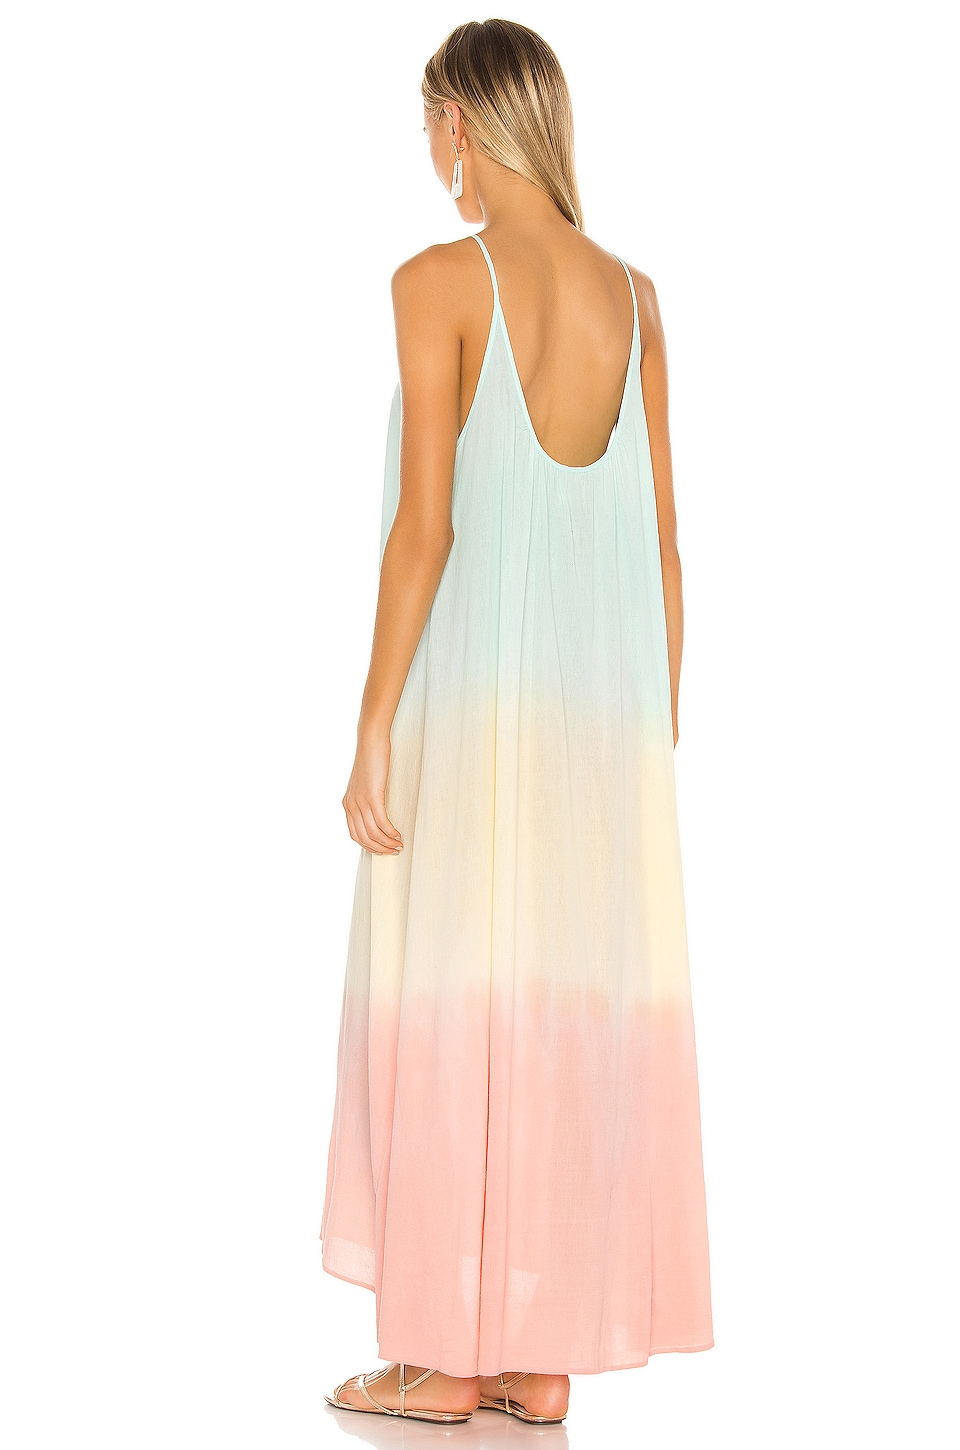 Tulum Core Cotton Maxi Dress, view 3, click to view large image.